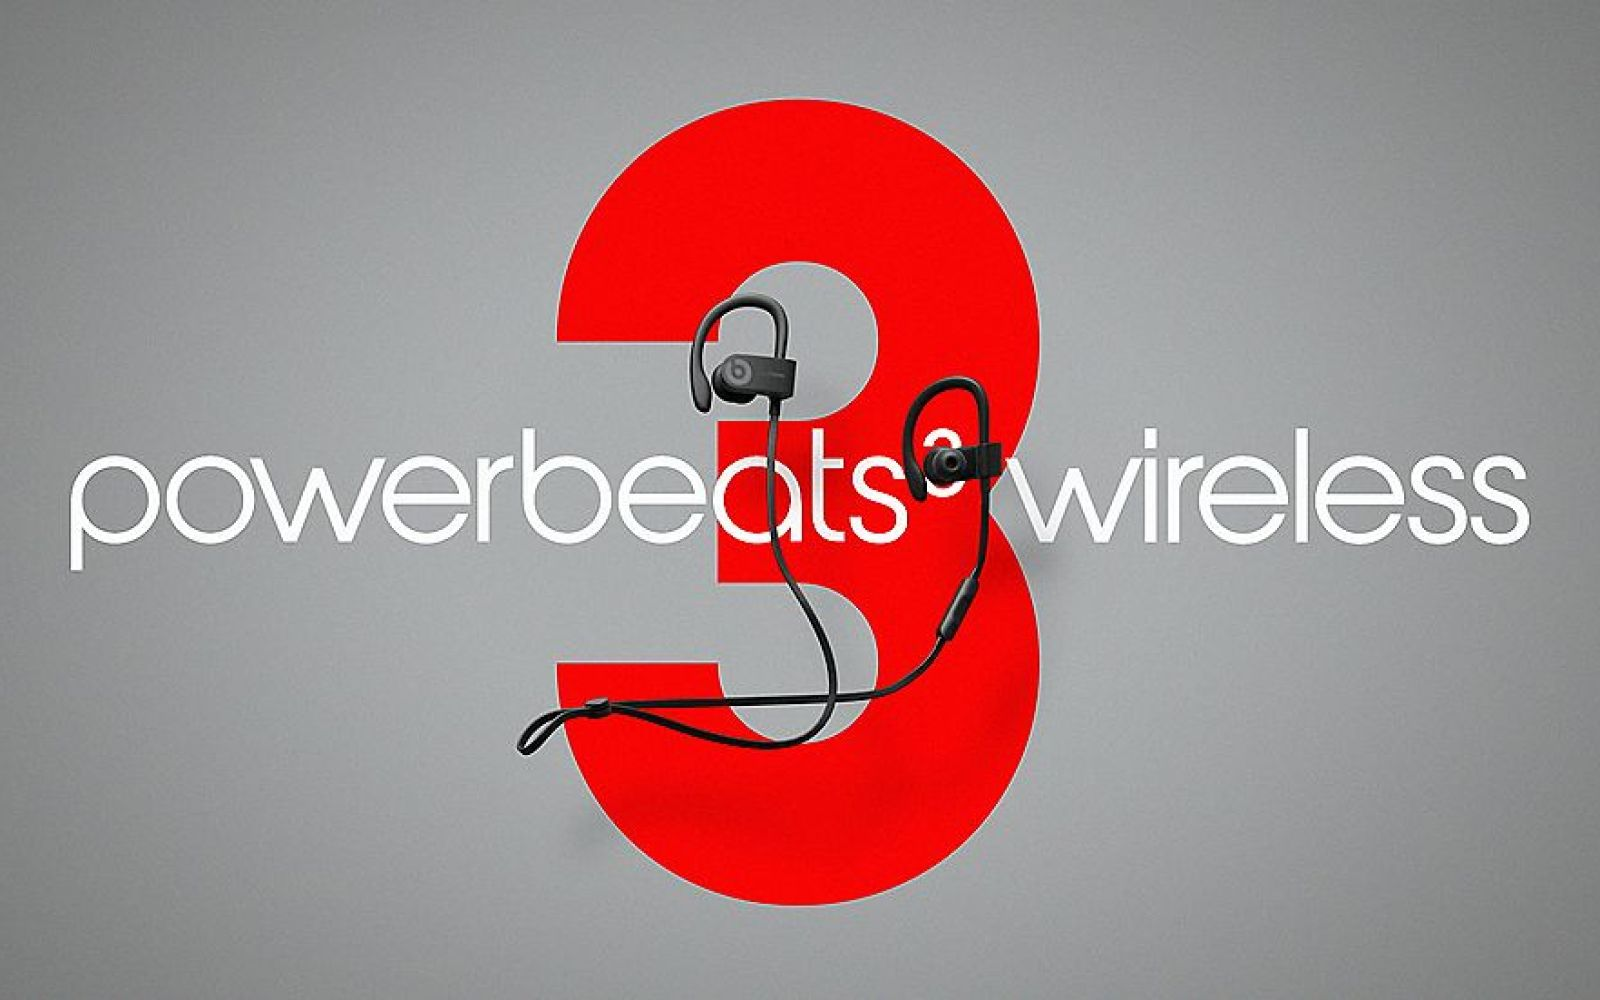 Powerbeats 3 wireless earphones now available to buy, featuring W1 chip and 12 hour battery life